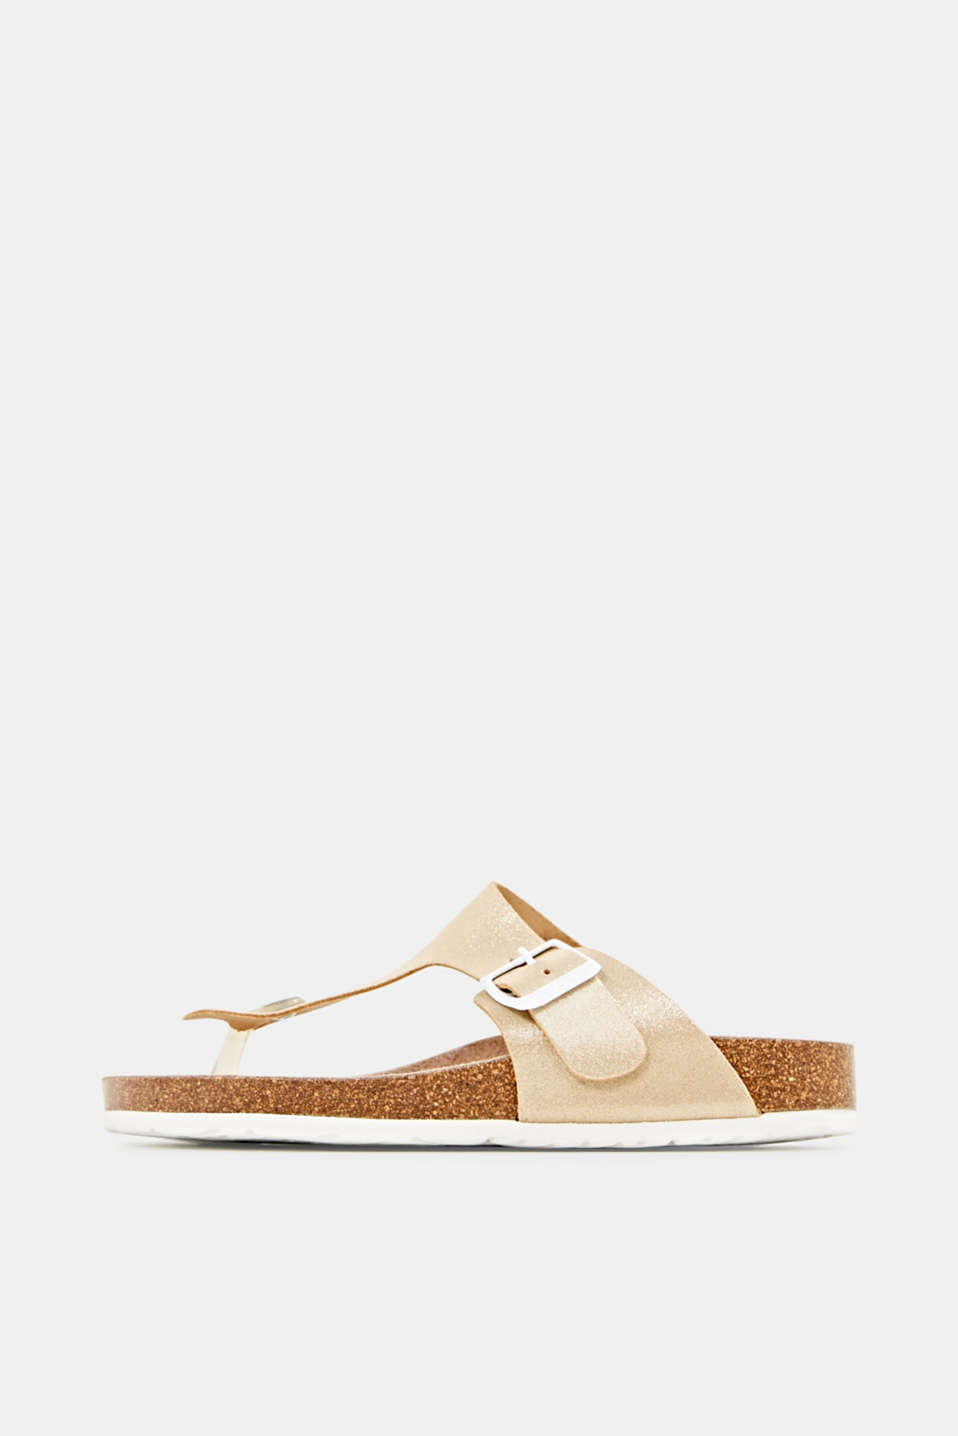 Leather slip-ons with a footbed, SAND, detail image number 0